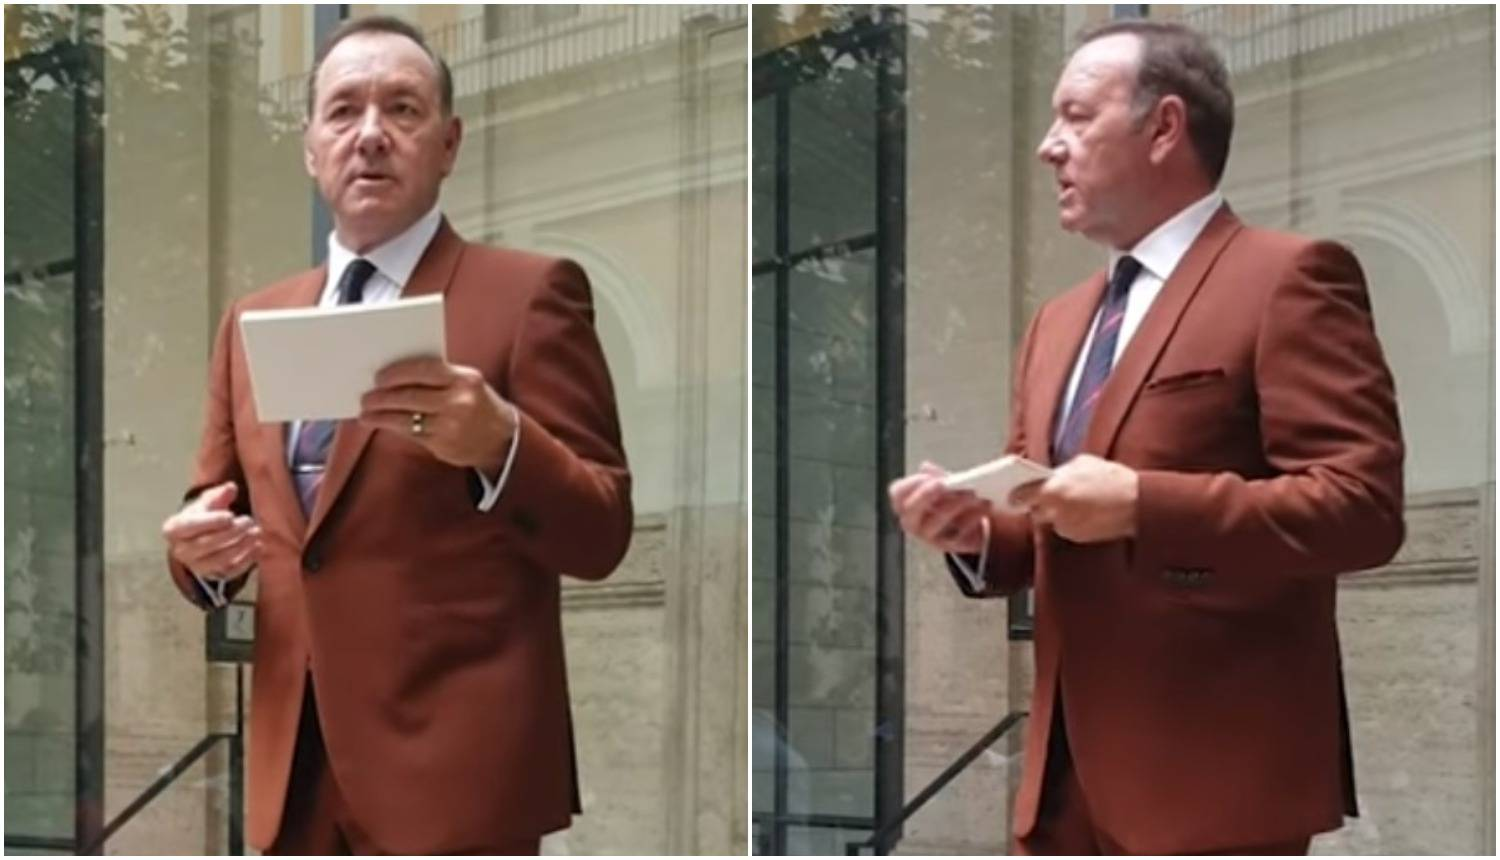 Kevin Spacey recitirao poeziju u Rimu i šokirao performansom